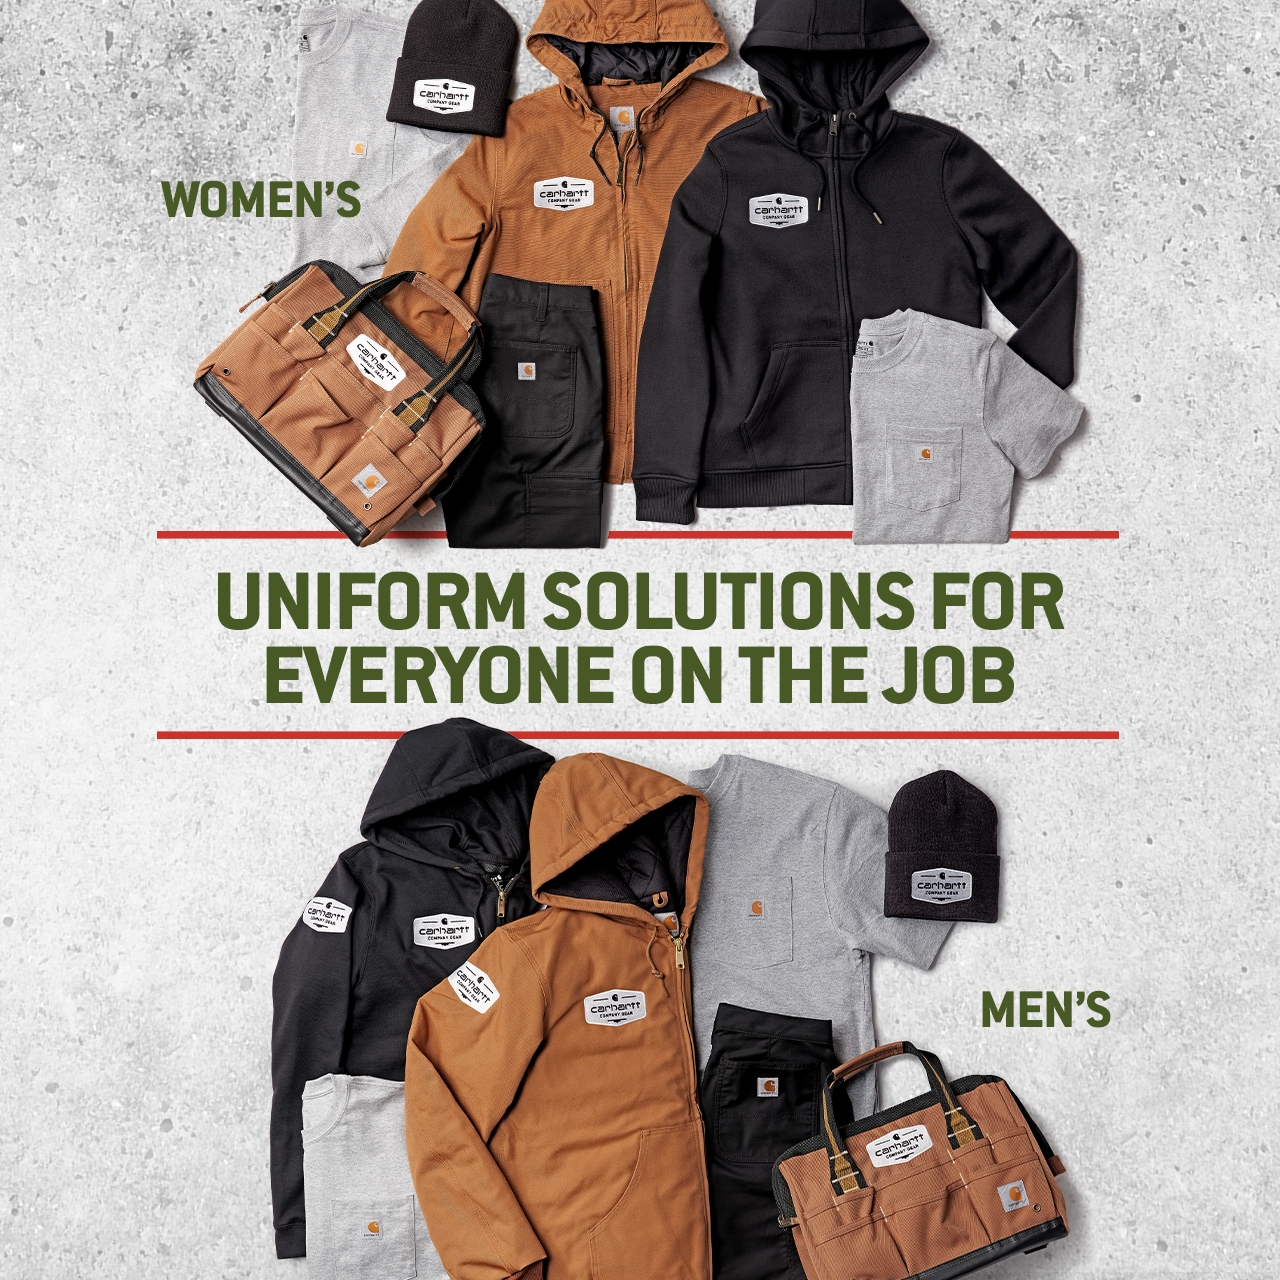 Uniform Solutions For Everyone On The Job